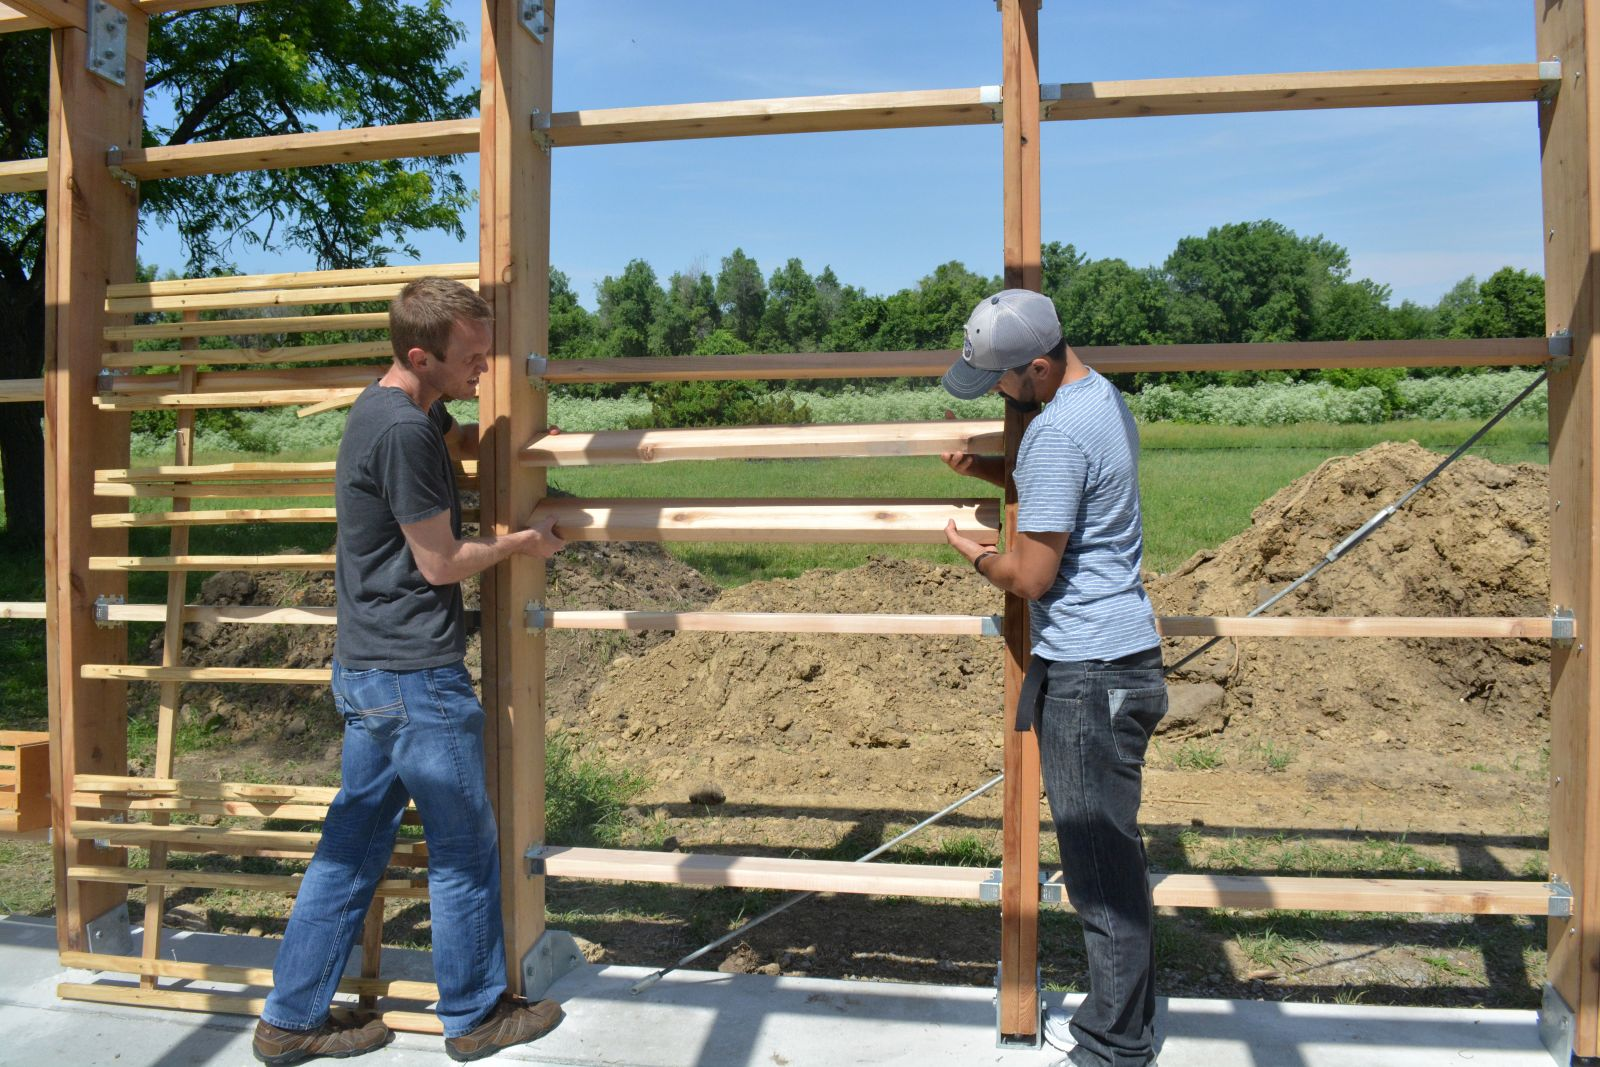 Mark Moeckl, left, and Noel Gonzalez test a full-scale mockup of the louvers on site at the park in Urbandale to see how much sun is blocked.